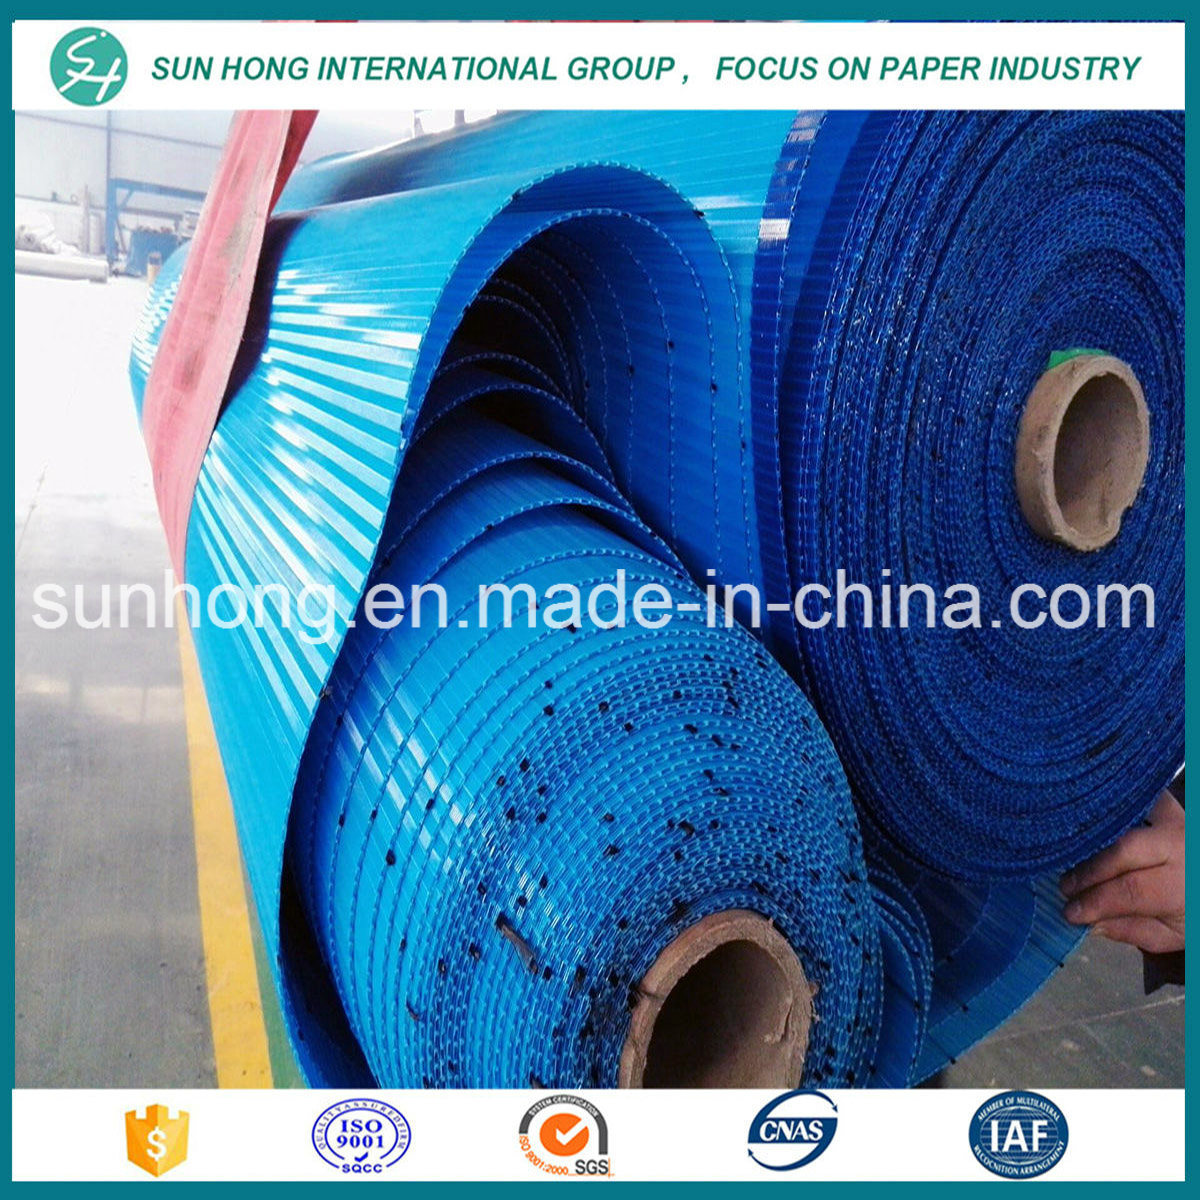 High Level with Sun Hong Brand of Press Felt for Paper Making